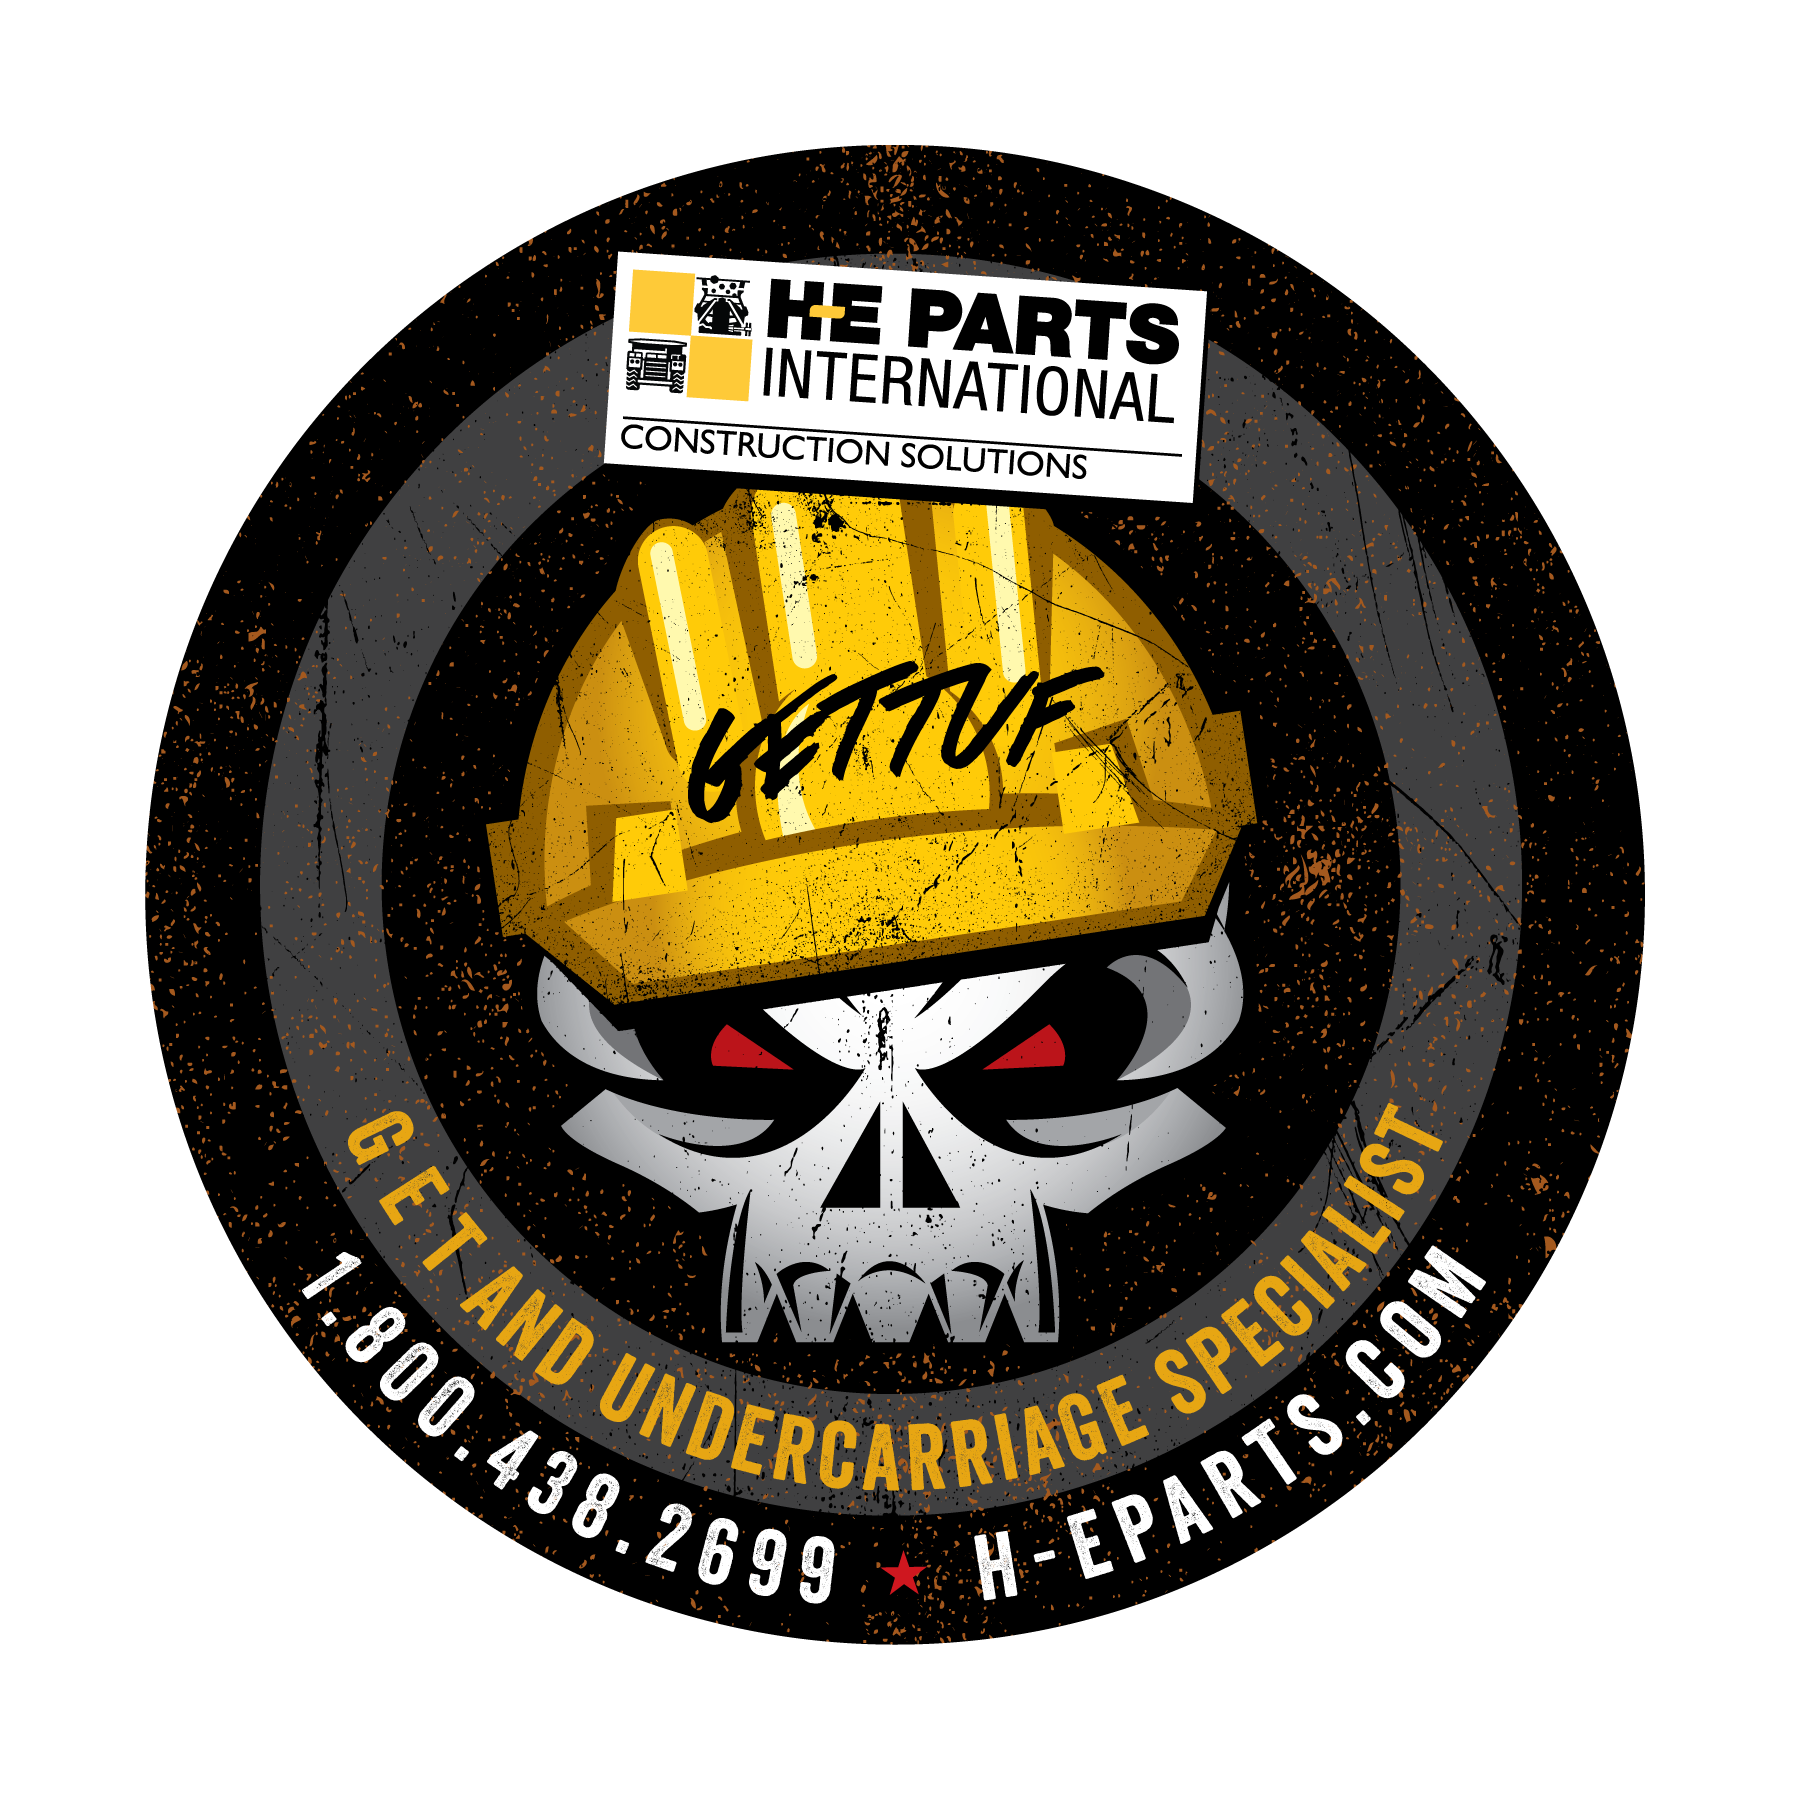 Create a masculine, tough, and sinister-looking sticker that will appear on construction equipment all over the US!